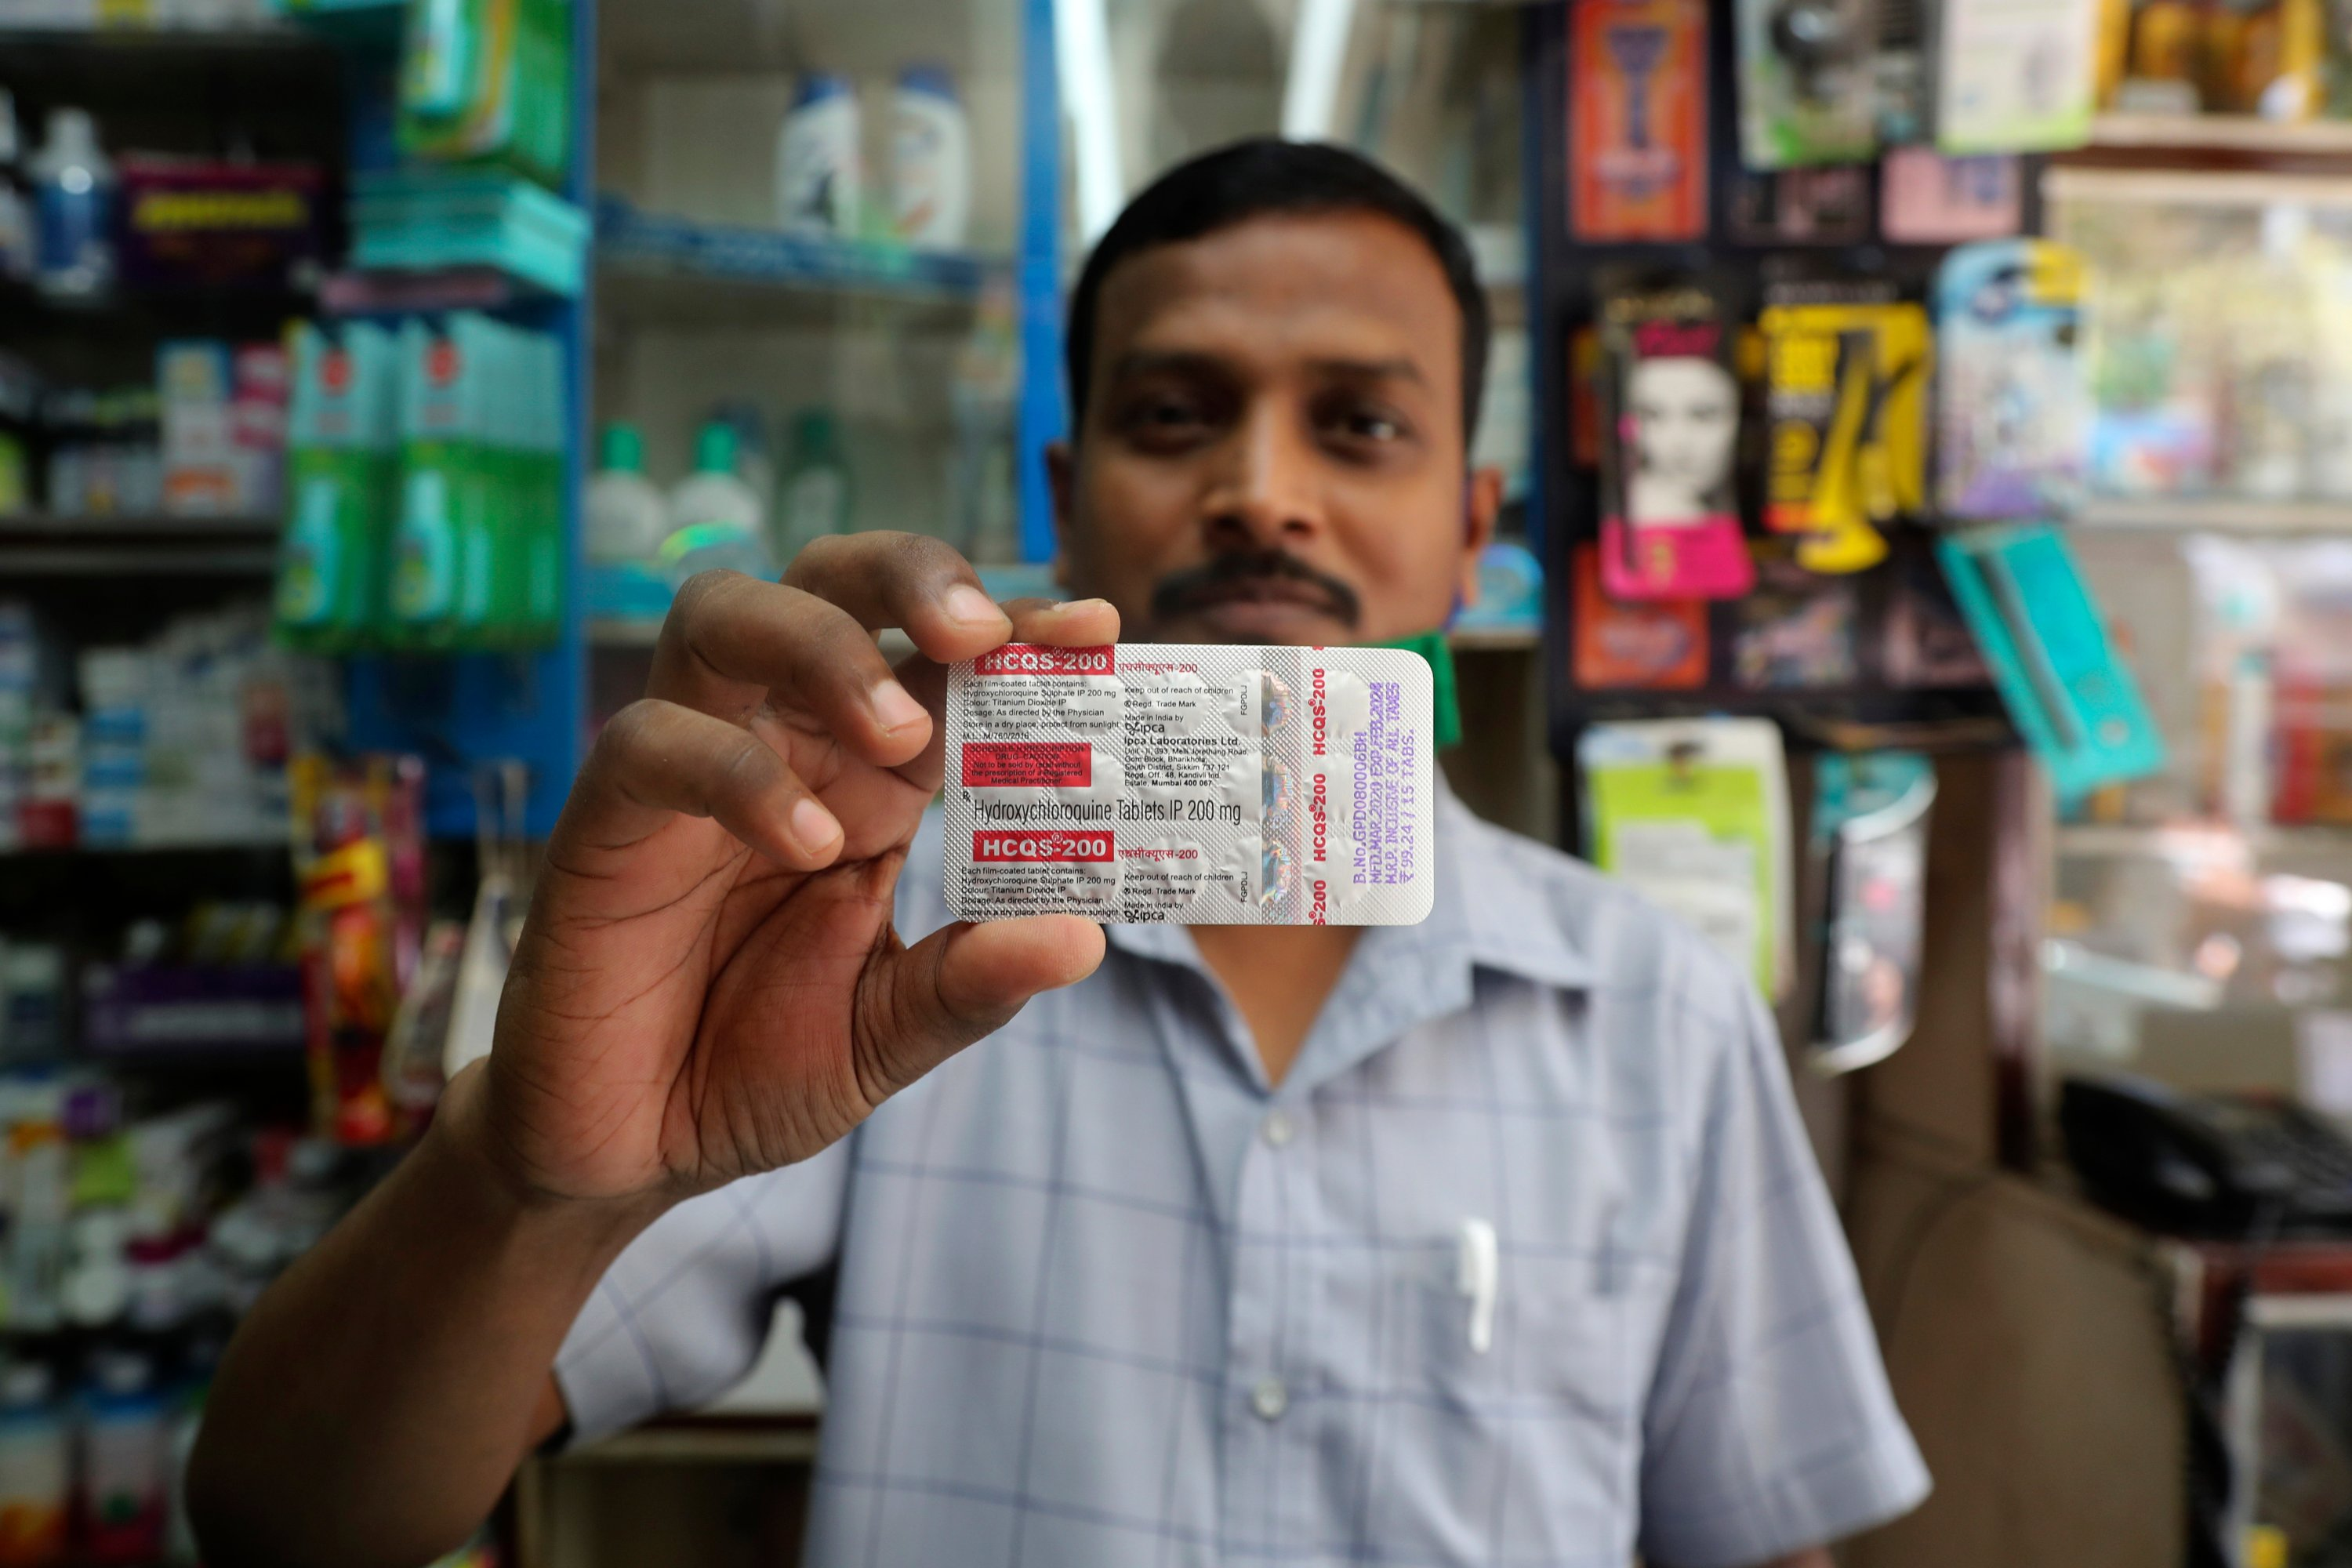 A chemist displays hydroxychloroquine tablets in Mumbai, India, Tuesday, May 19, 2020. (AP Photo)